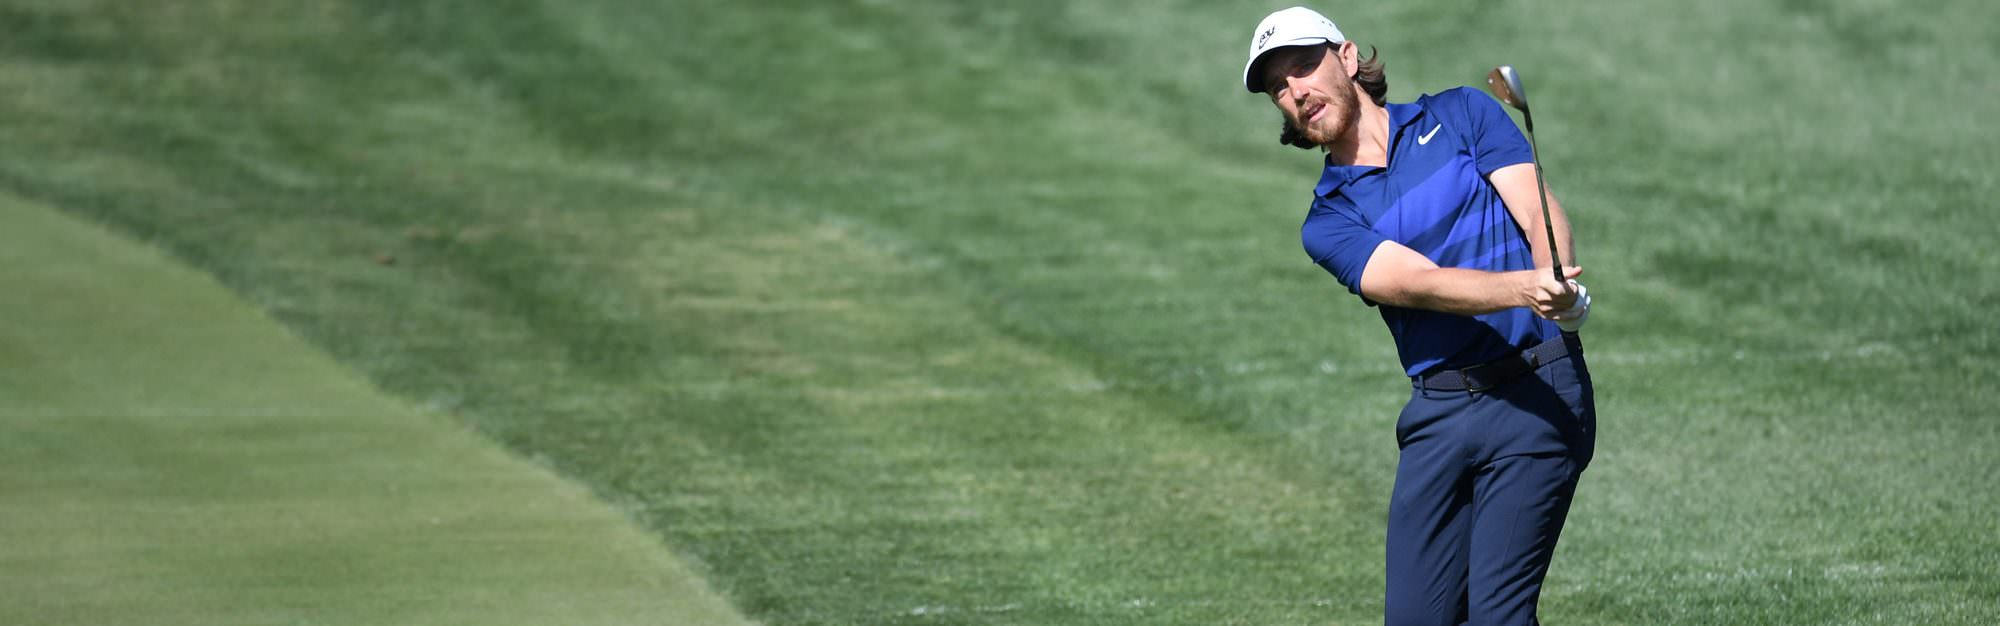 WGC-Workday Championship preview: TV times and betting tips